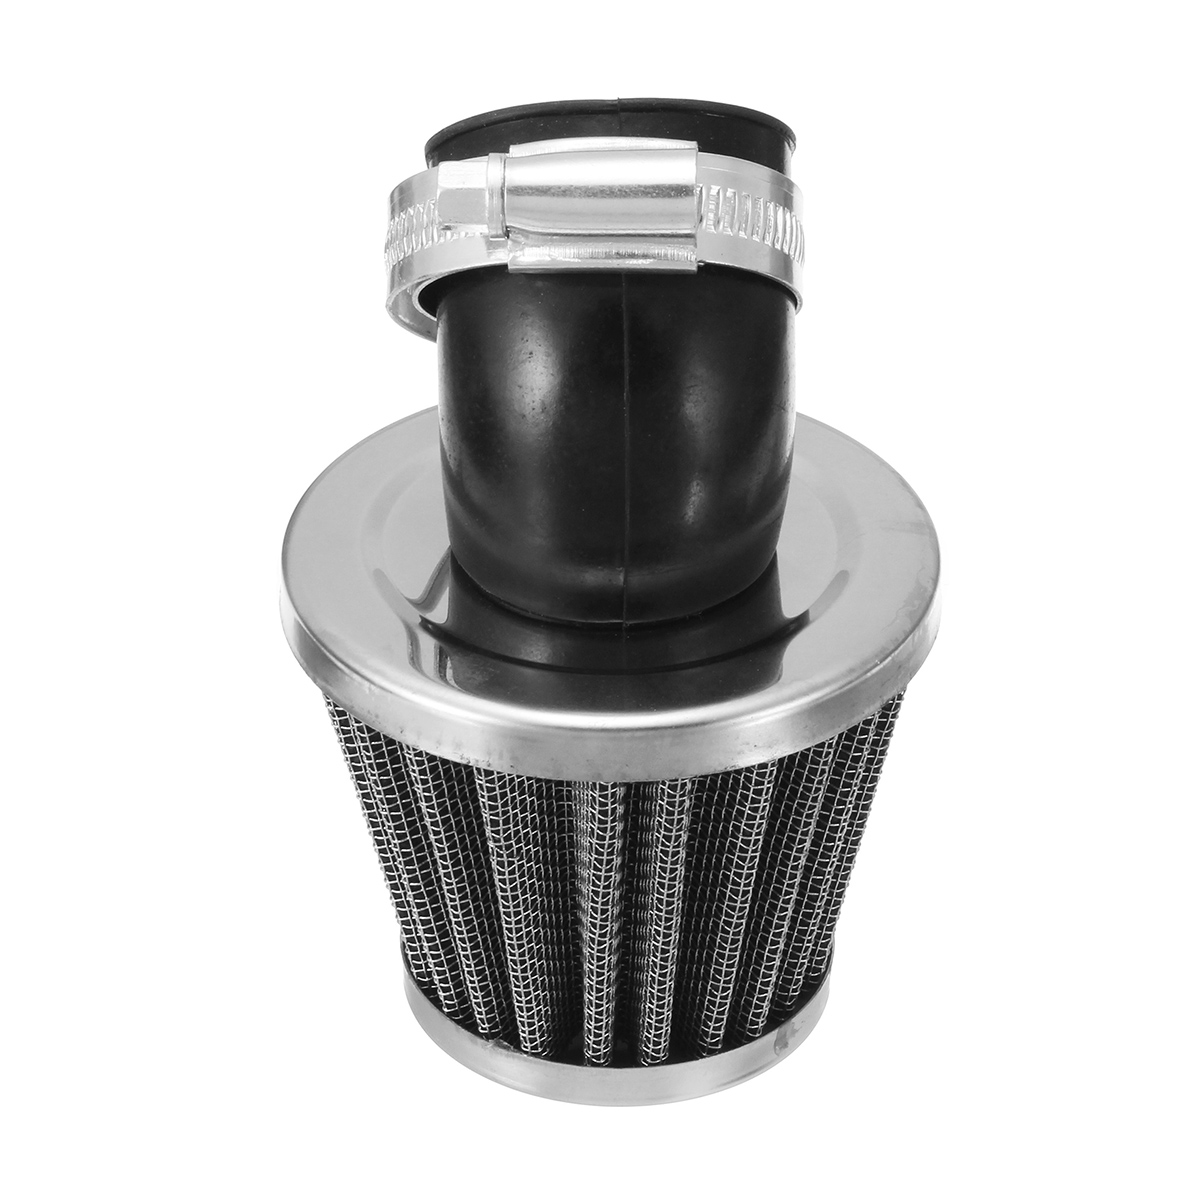 35-50MM-Air-Filter-Black-Fit-For-50-110-125-140CC-Pit-Dirt-Bike-Motorcycle-AT thumbnail 7